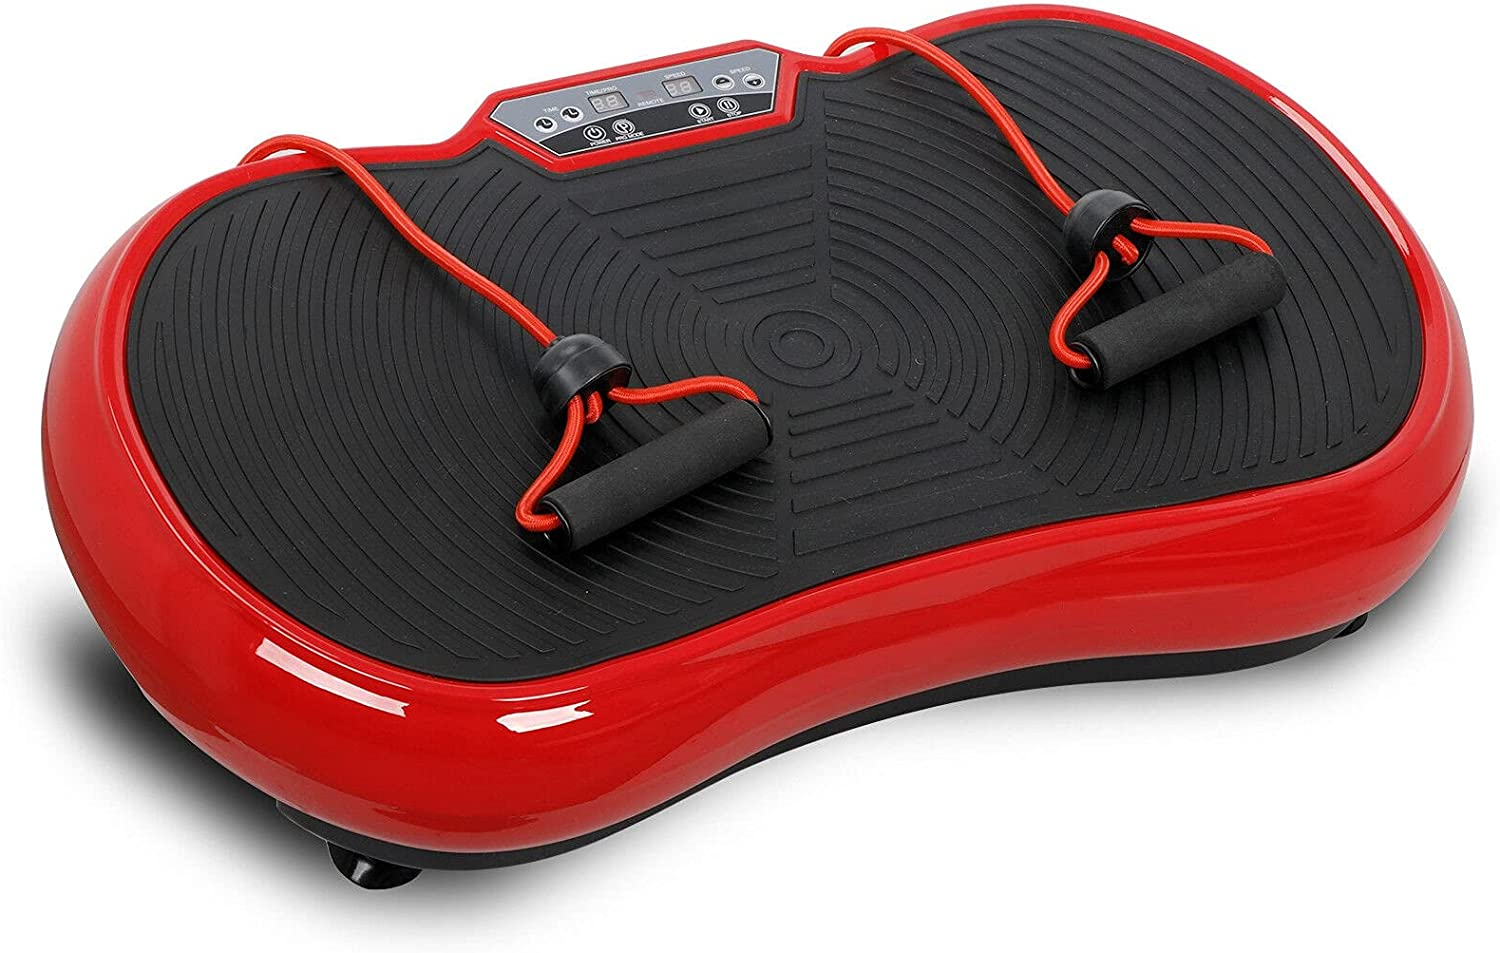 HUIJK New Orleans Mall Vibration Platform Plate Whole Massa New arrival Fitness Body Exercise